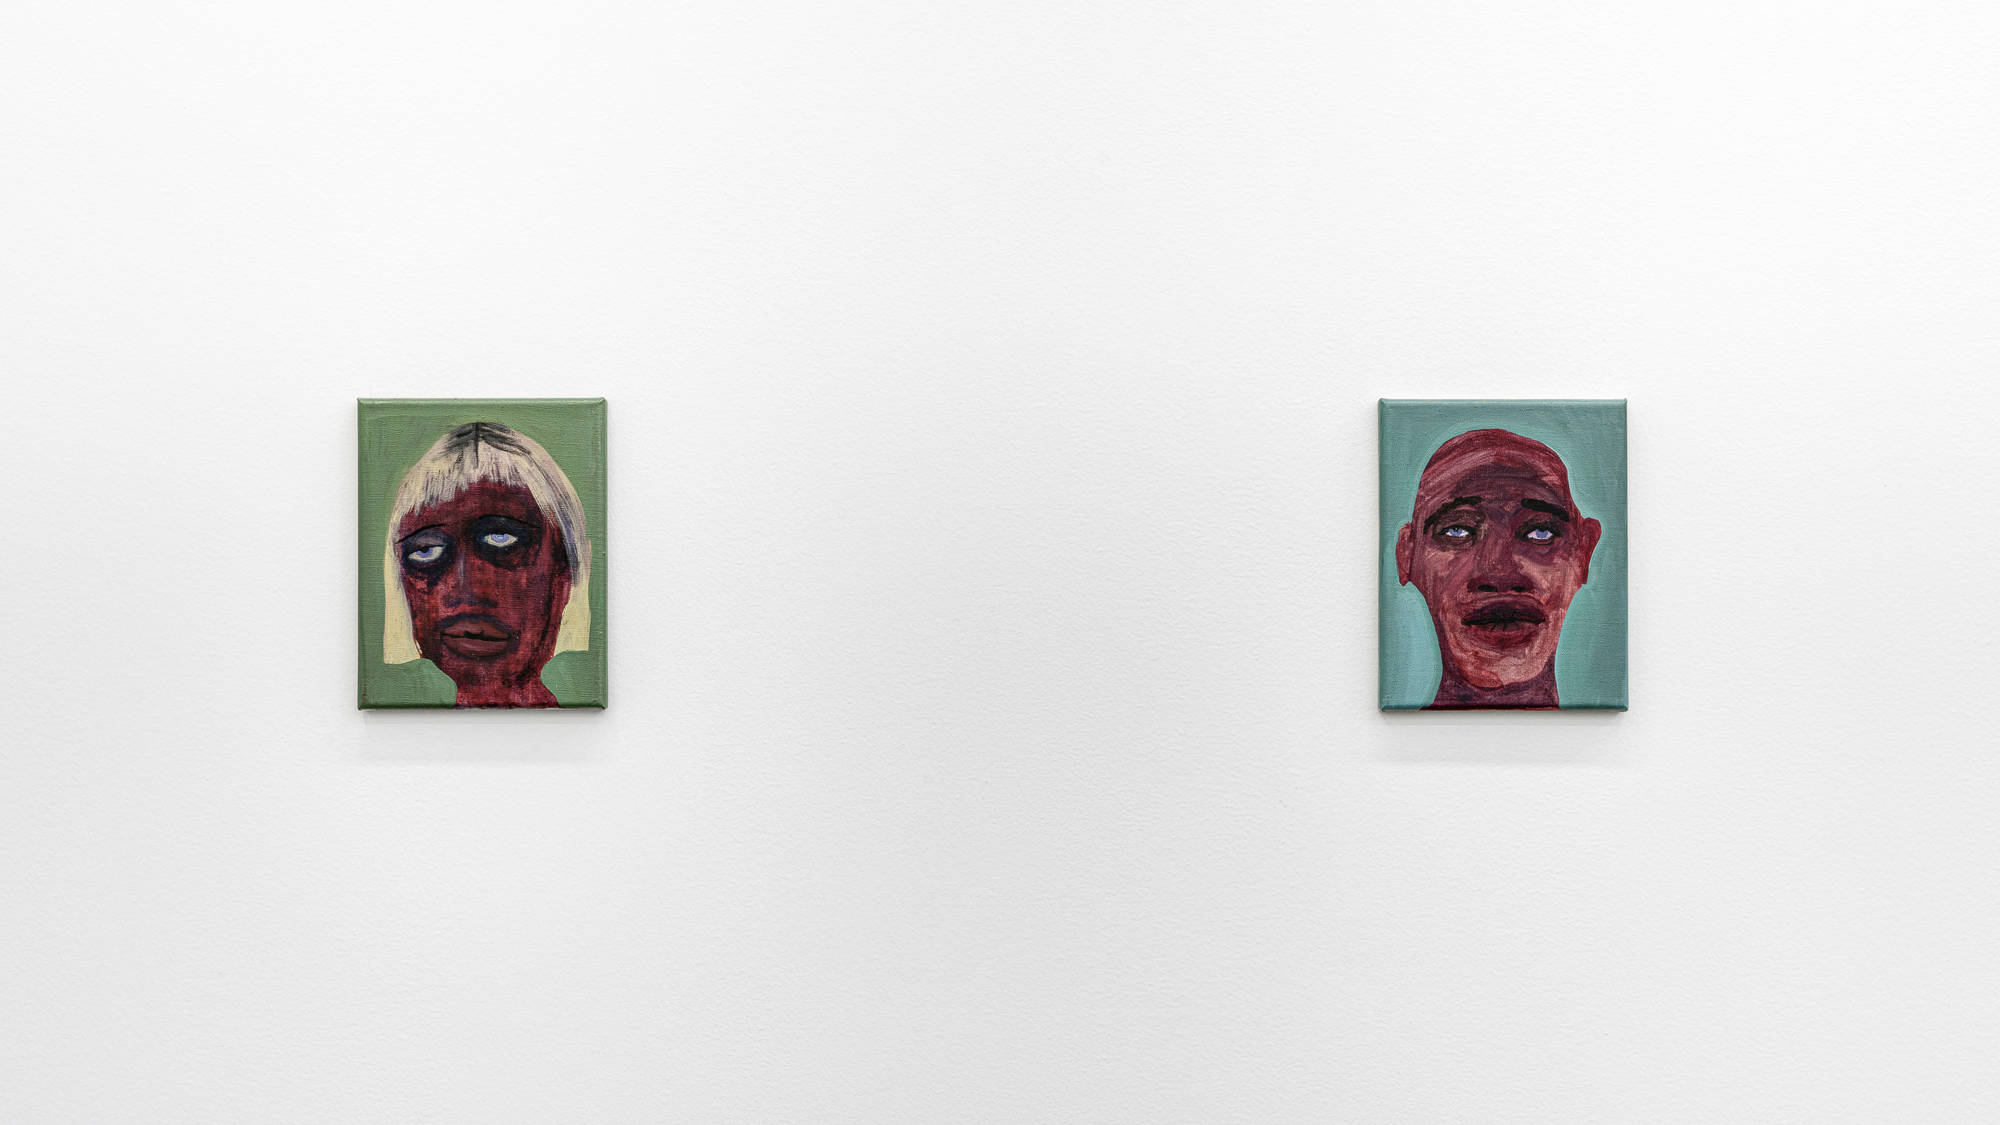 Image: Work by February James. We Laugh Loud So The Spirits Can Hear, 2020. Installation view. Two small scale oil-painted portraits hang on a wall. The dark-skinned faces are depicted in a washy style, which creates a stark contrast to the flat backgrounds of sage green (left) and turquoise (right). Image courtesy of the artist and Monique Meloche Gallery.